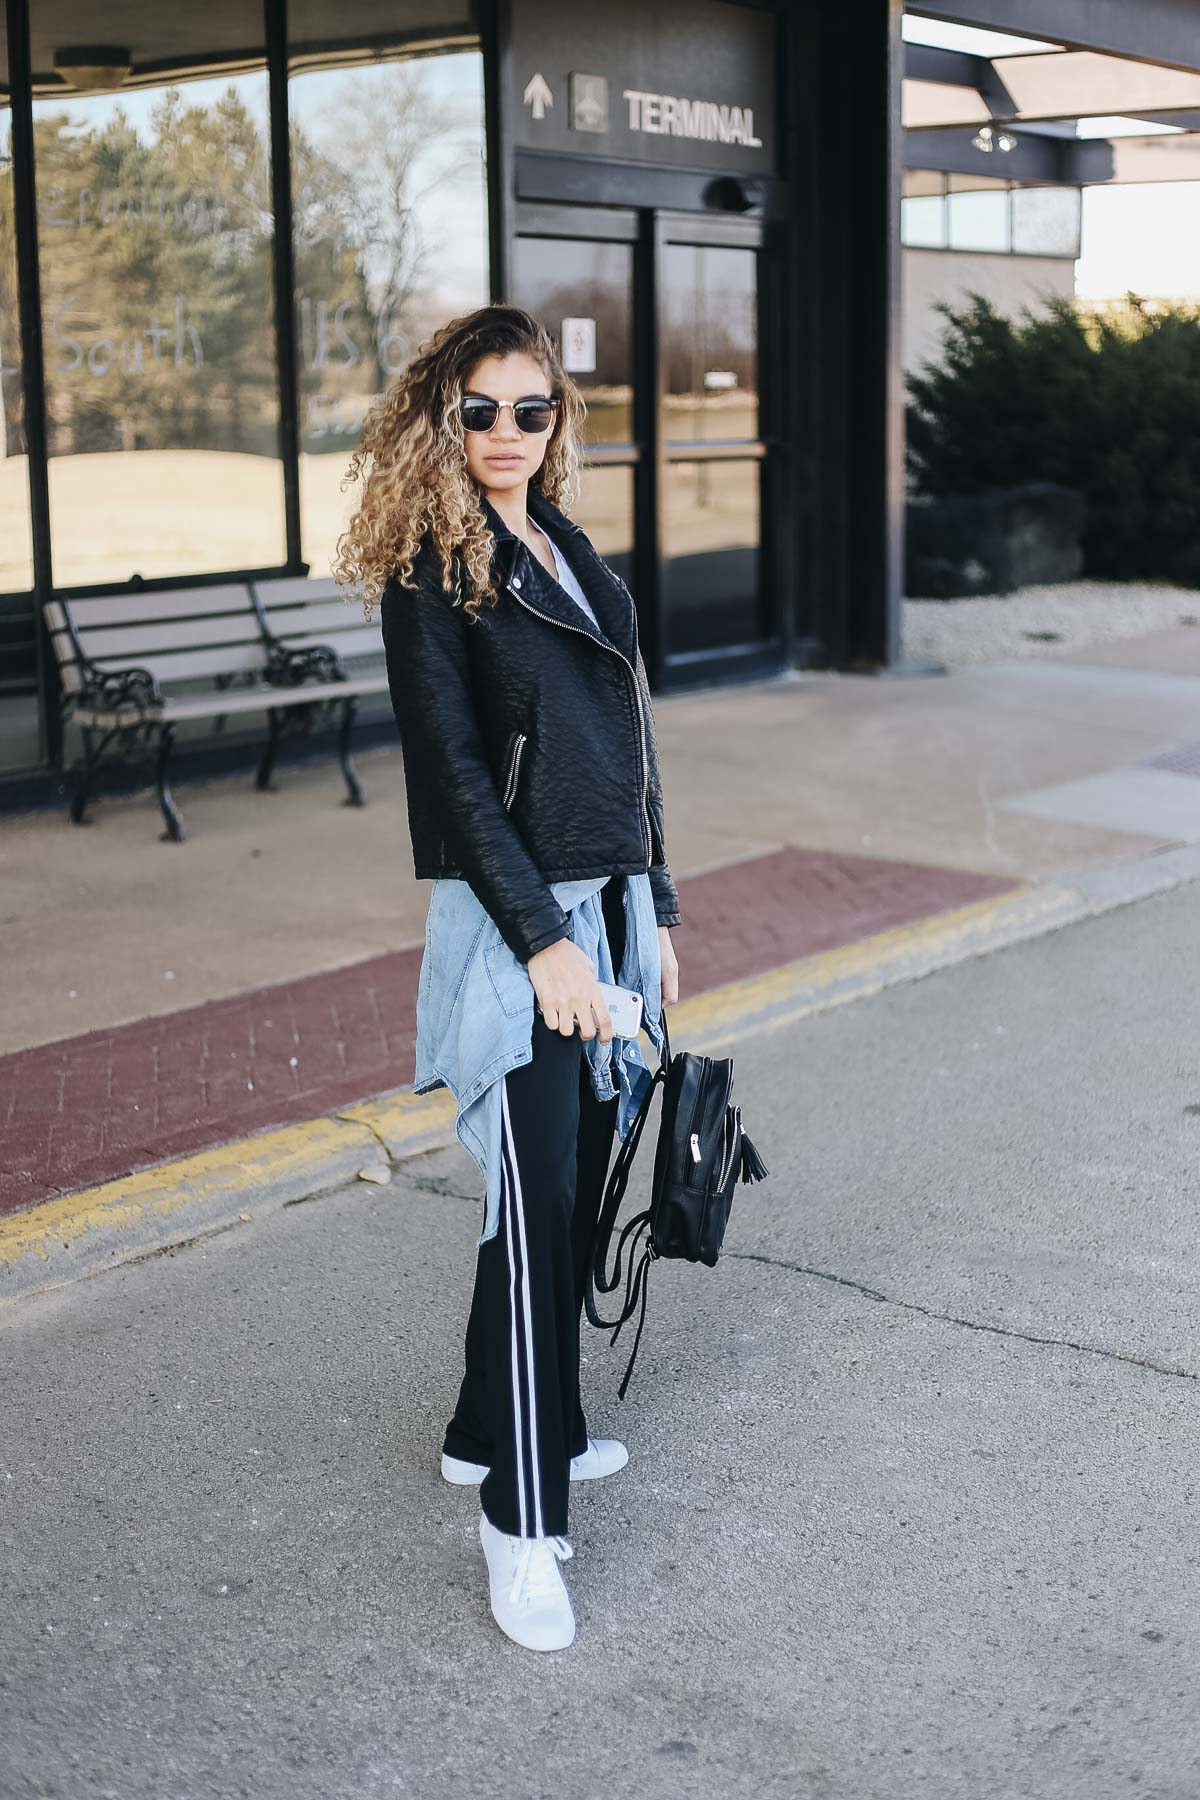 comfy airport outfit with track pants and a motorcycle jacket